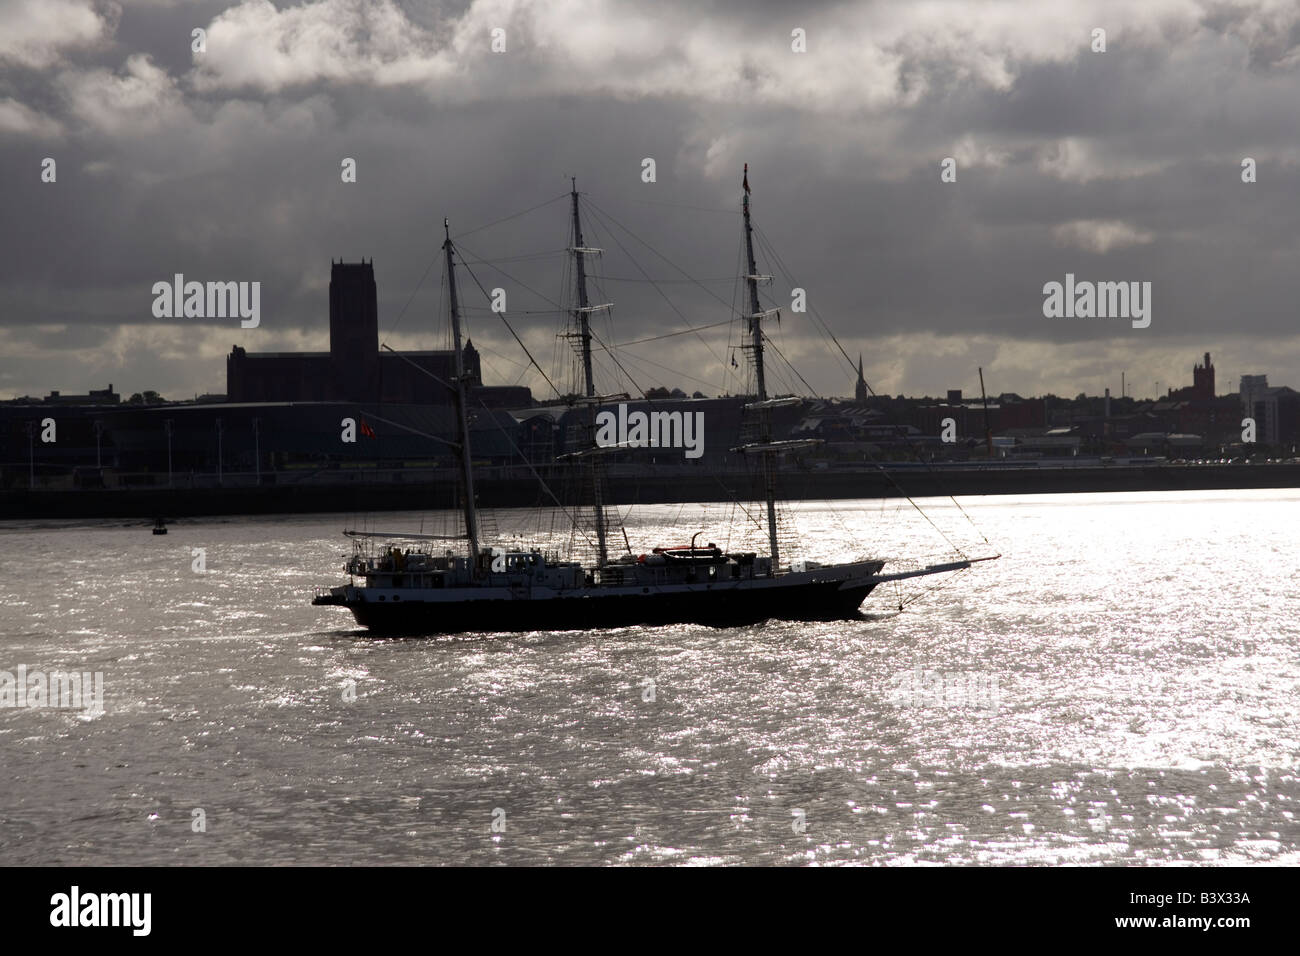 The Dutch sailing ship the Eendracht at the Tall Ships race parade in Liverpool July 2008 in sailing up the Mersey - Stock Image